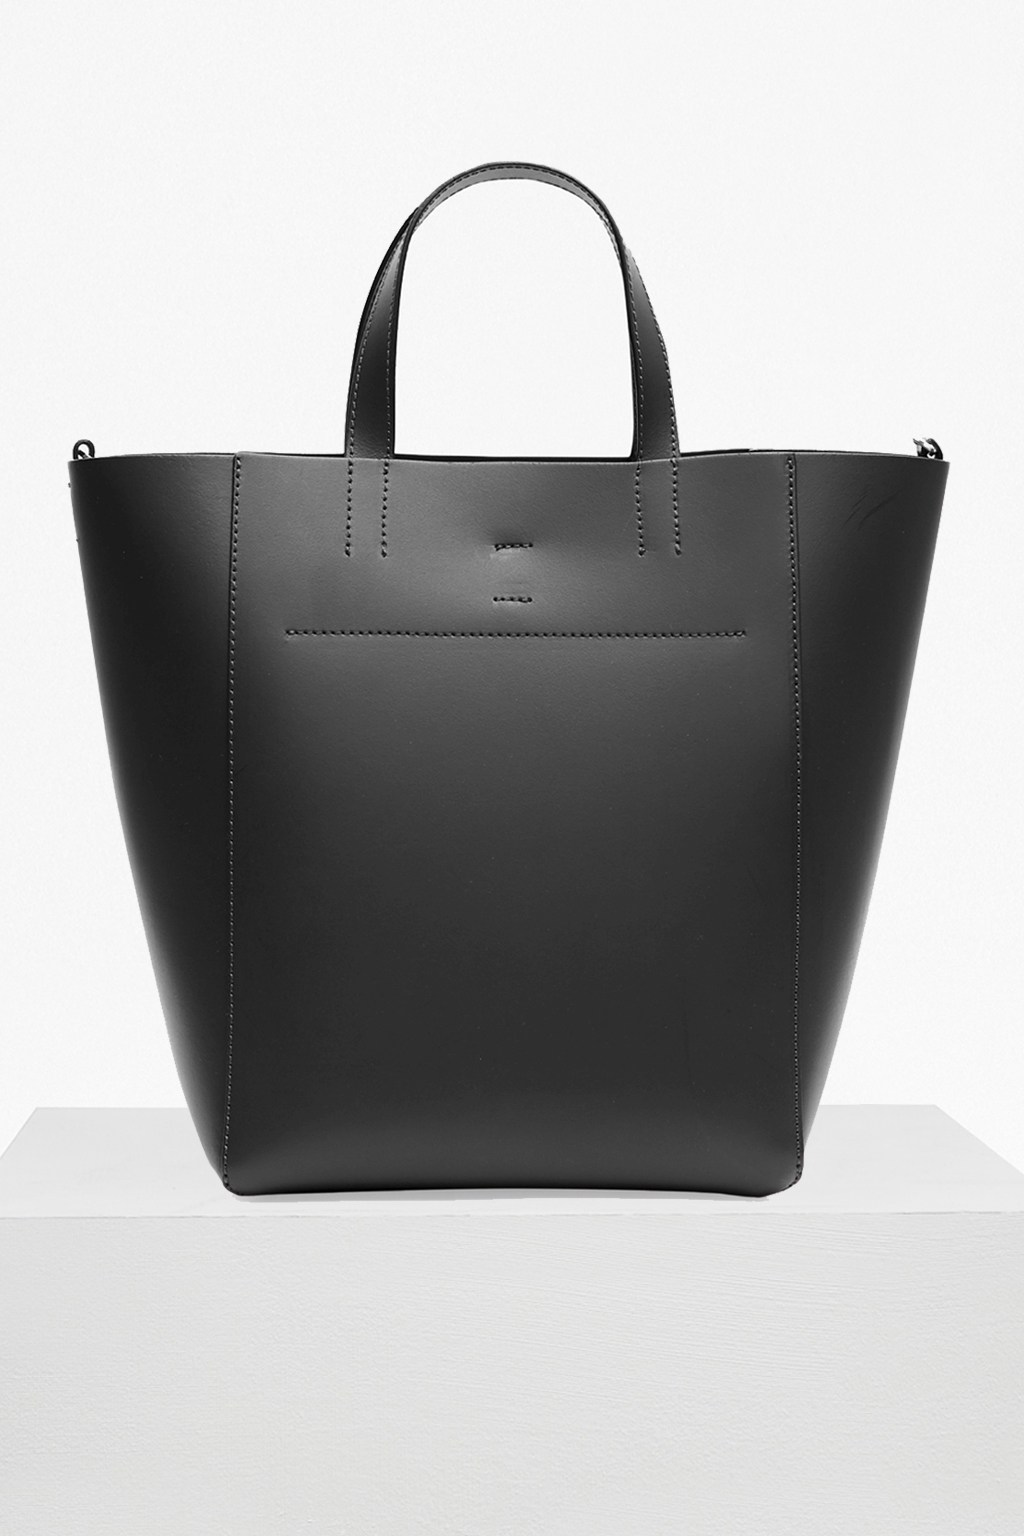 19040d9547 Vachetta Leather Tote Bag. loading images.